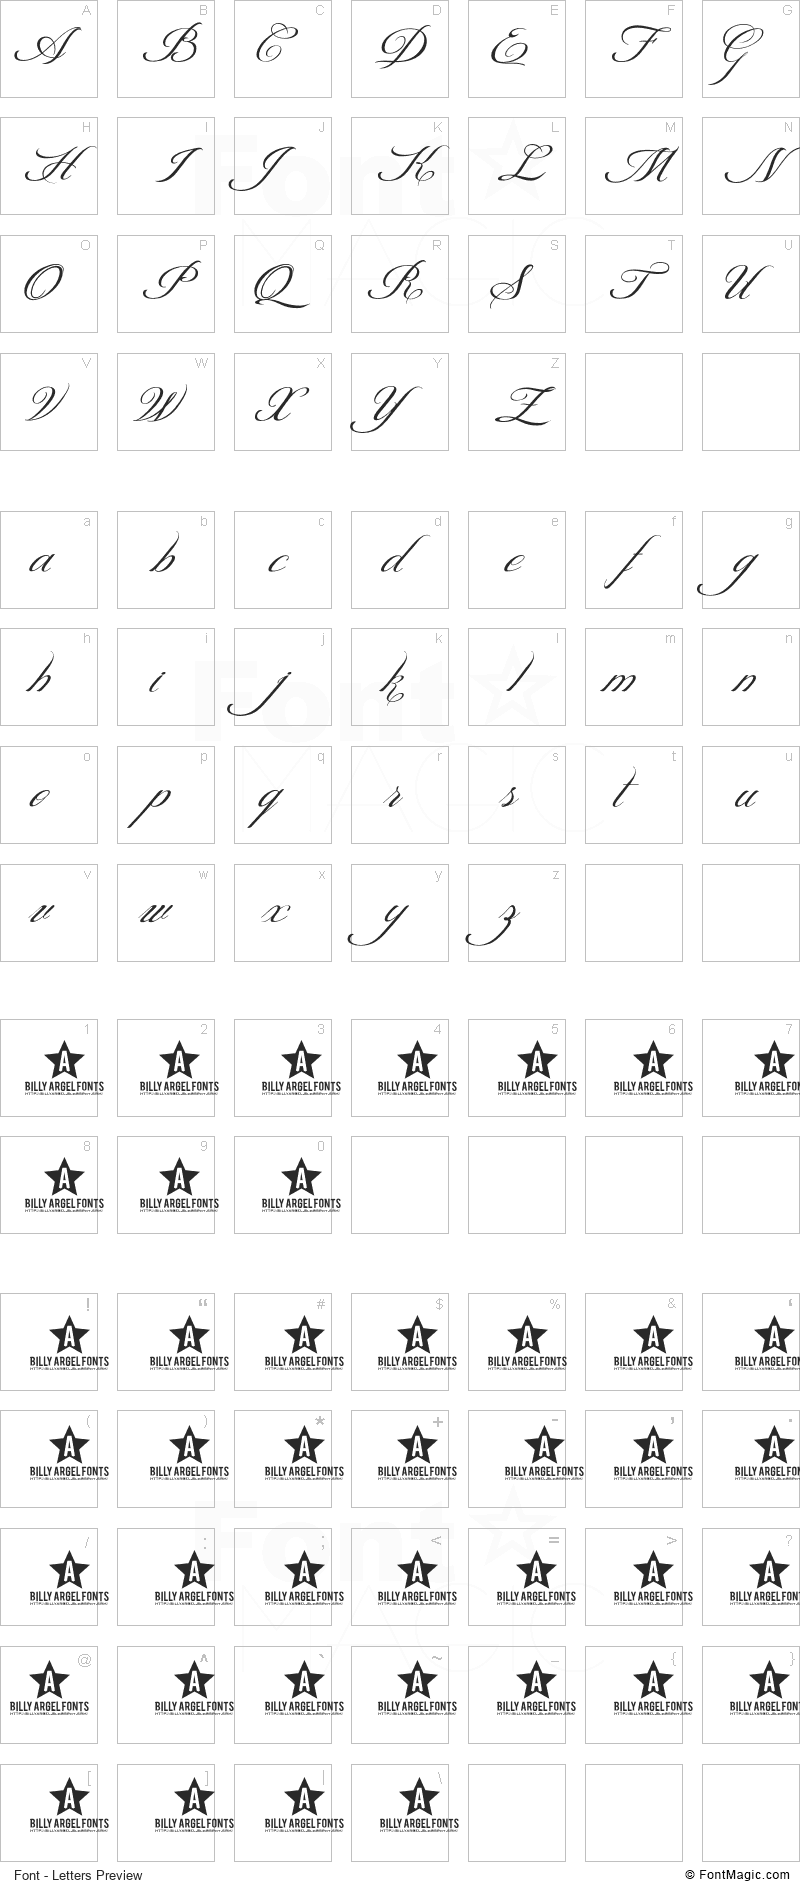 Shit Happens Font - All Latters Preview Chart